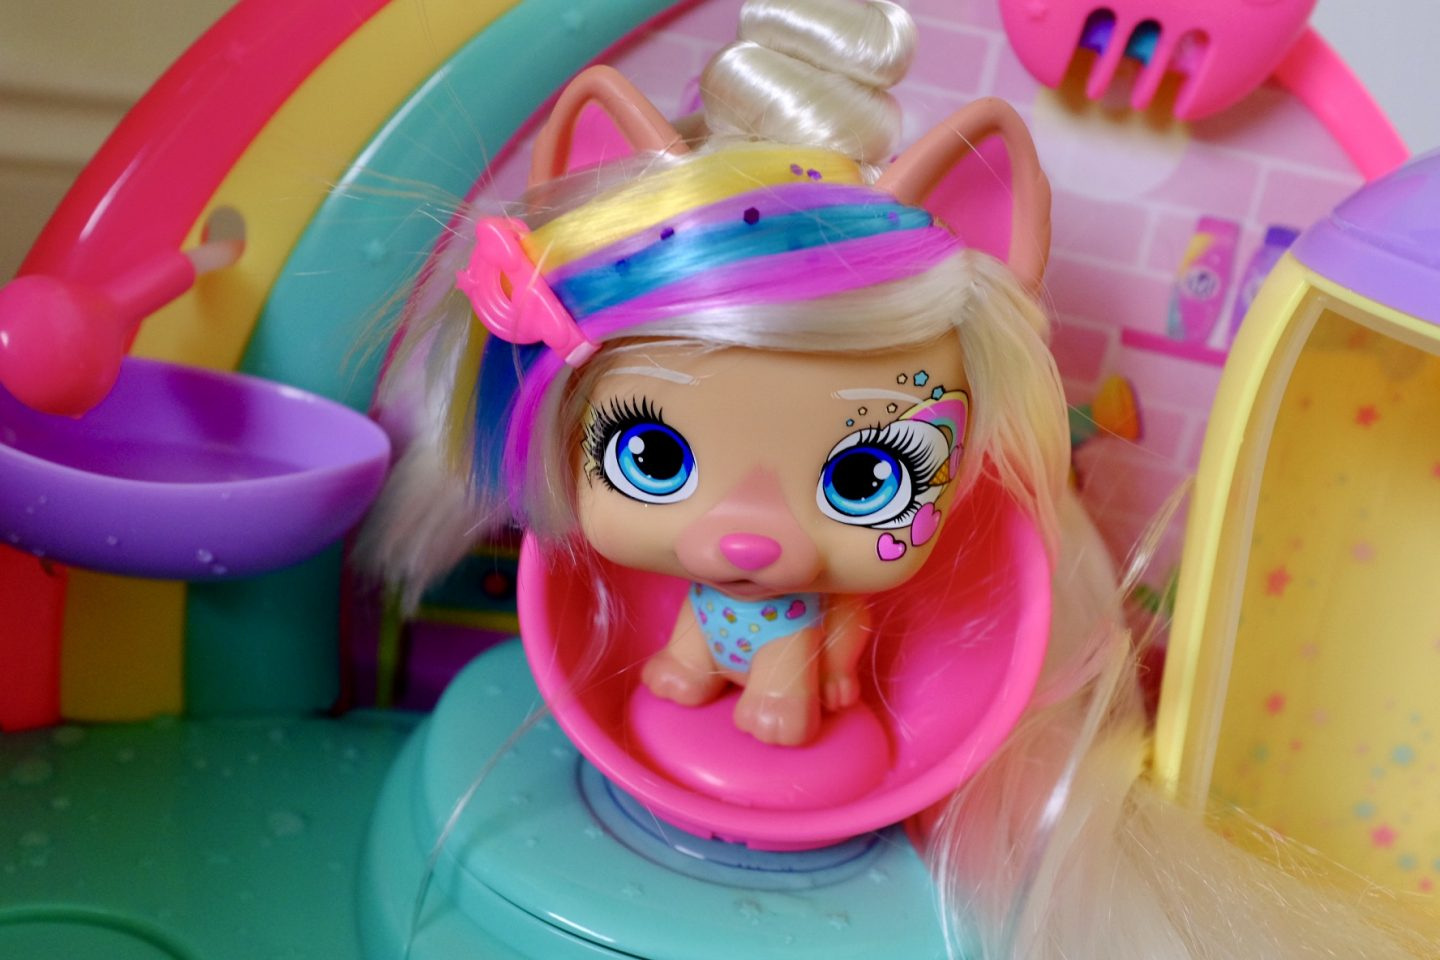 VIP Pets Fabio and Fabia's Hair Salon Playset – REVIEW | AD